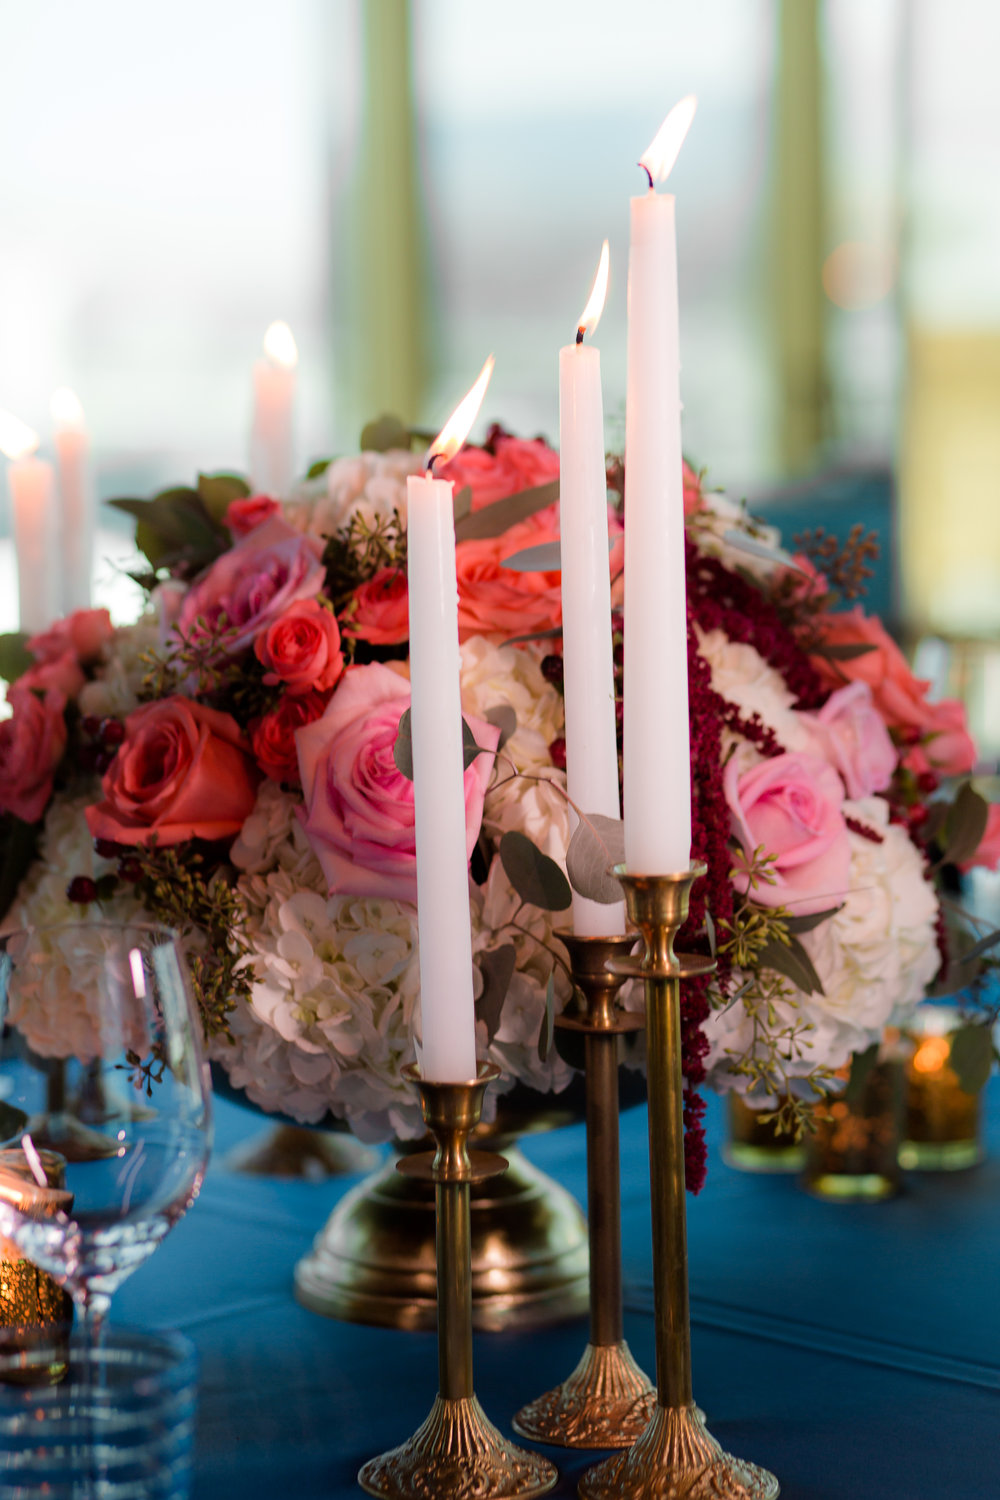 Tall taped candles at luxe, upscale French wedding.  Styled Wedding Shoot inspired by French Blue by Las Vegas Wedding Planner Andrea Eppolito.  Photography by   Rebecca Marie  .  Floral and Decor by   By Dzign  .  Beauty by   Amelia C & Co  .  Shot at Rivea at T  he Delano.